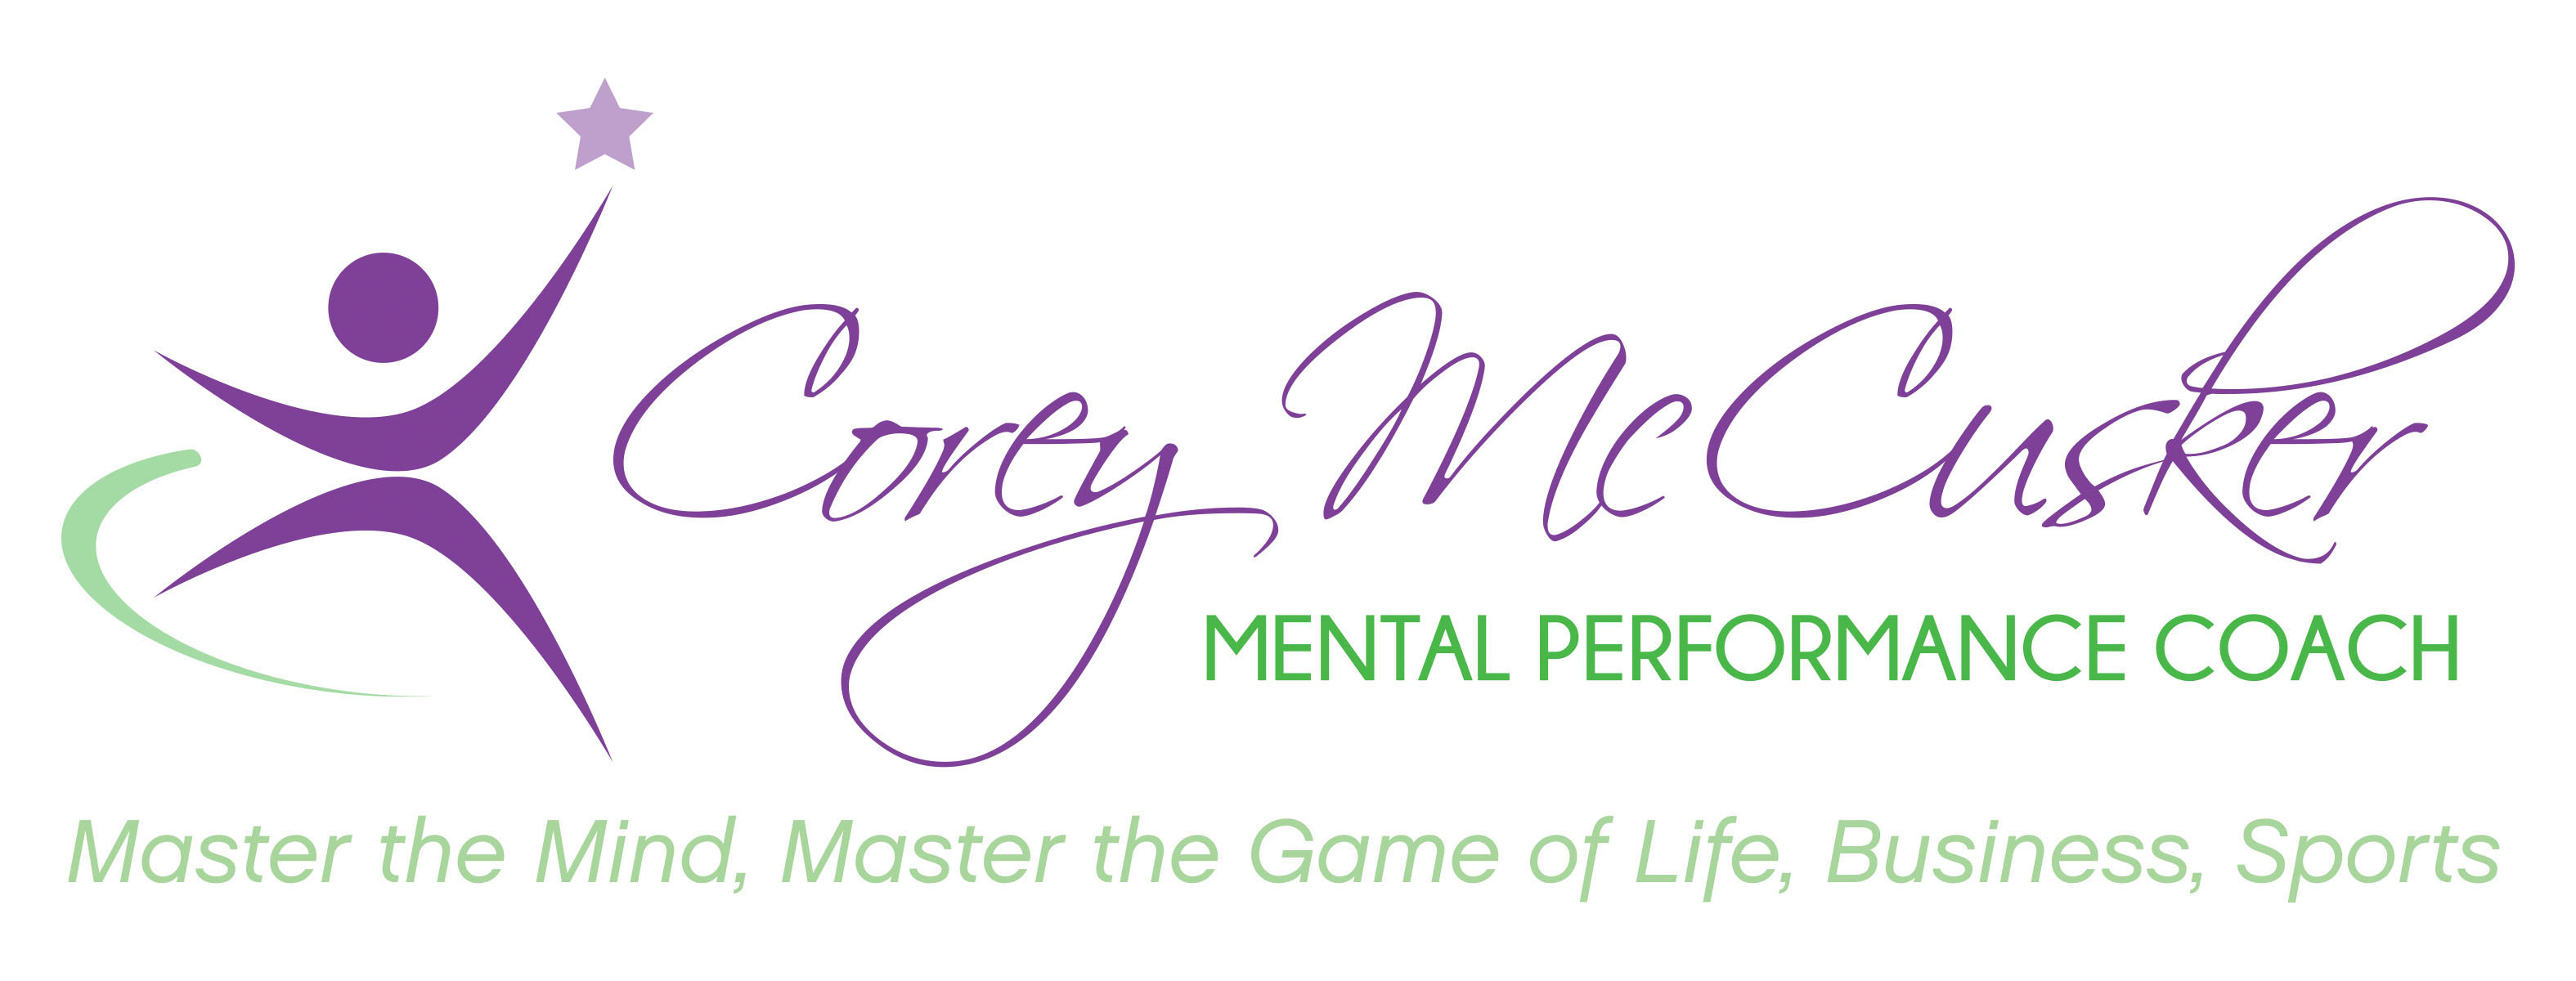 Corey McCusker<br>Mental Performance Coach